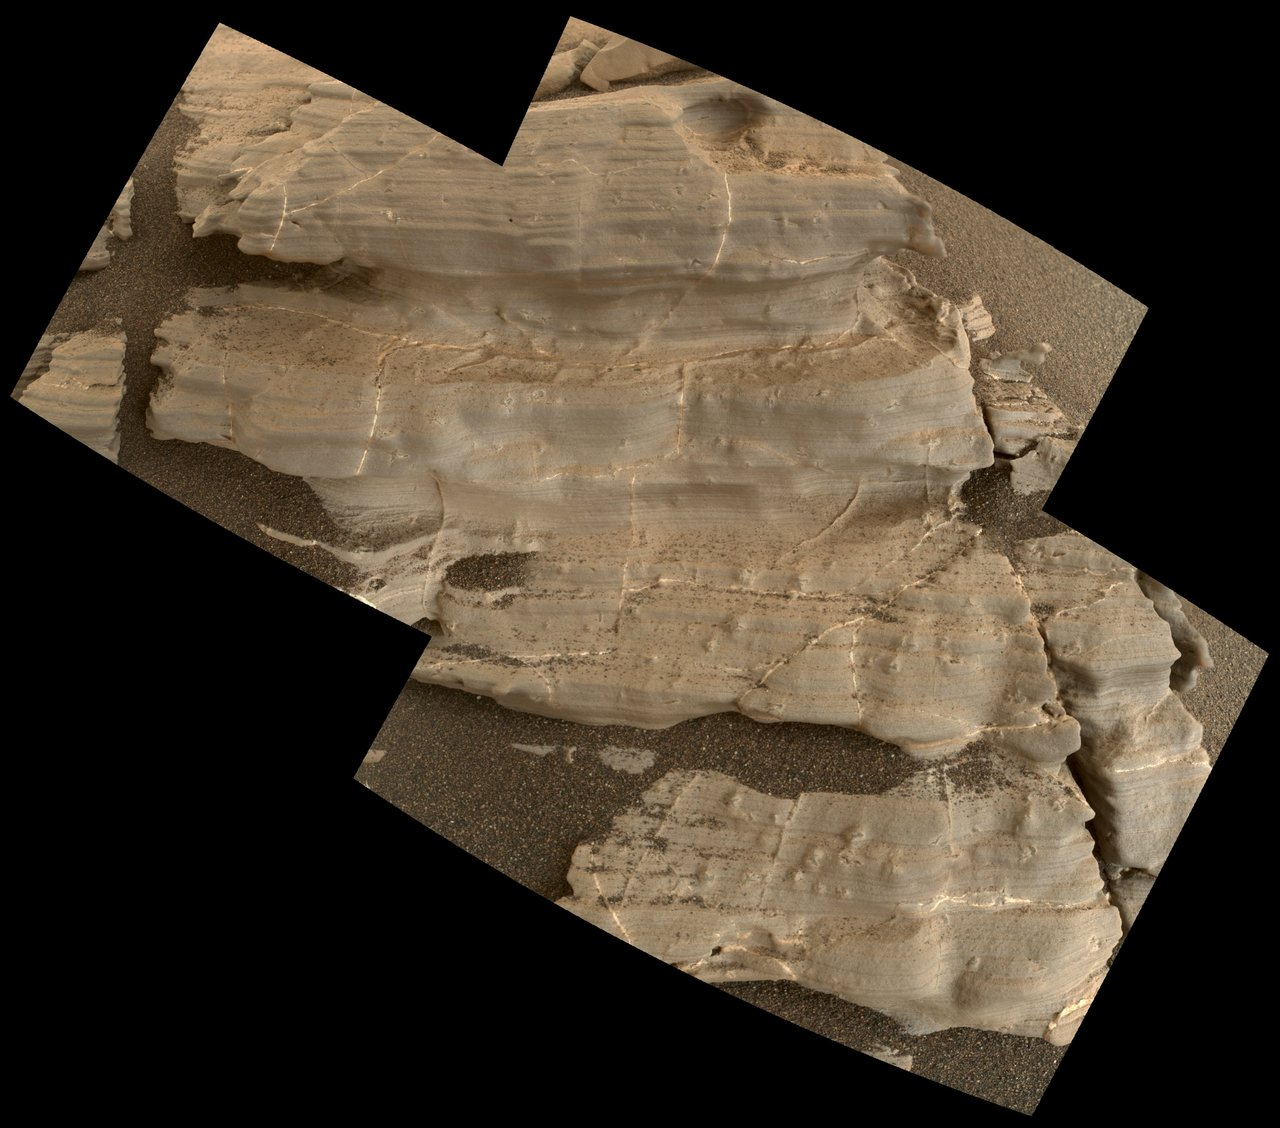 "This exposure of finely laminated bedrock on Mars includes tiny crystal-shaped bumps, plus mineral veins with both bright and dark material. This rock target, called ""Jura,"" was imaged by the MAHLI camera on NASA's Curiosity Mars rover on Jan. 4, 2018, during Sol 1925 of the mission. Credits: NASA/JPL-Caltech/MSSS  Full image and caption"